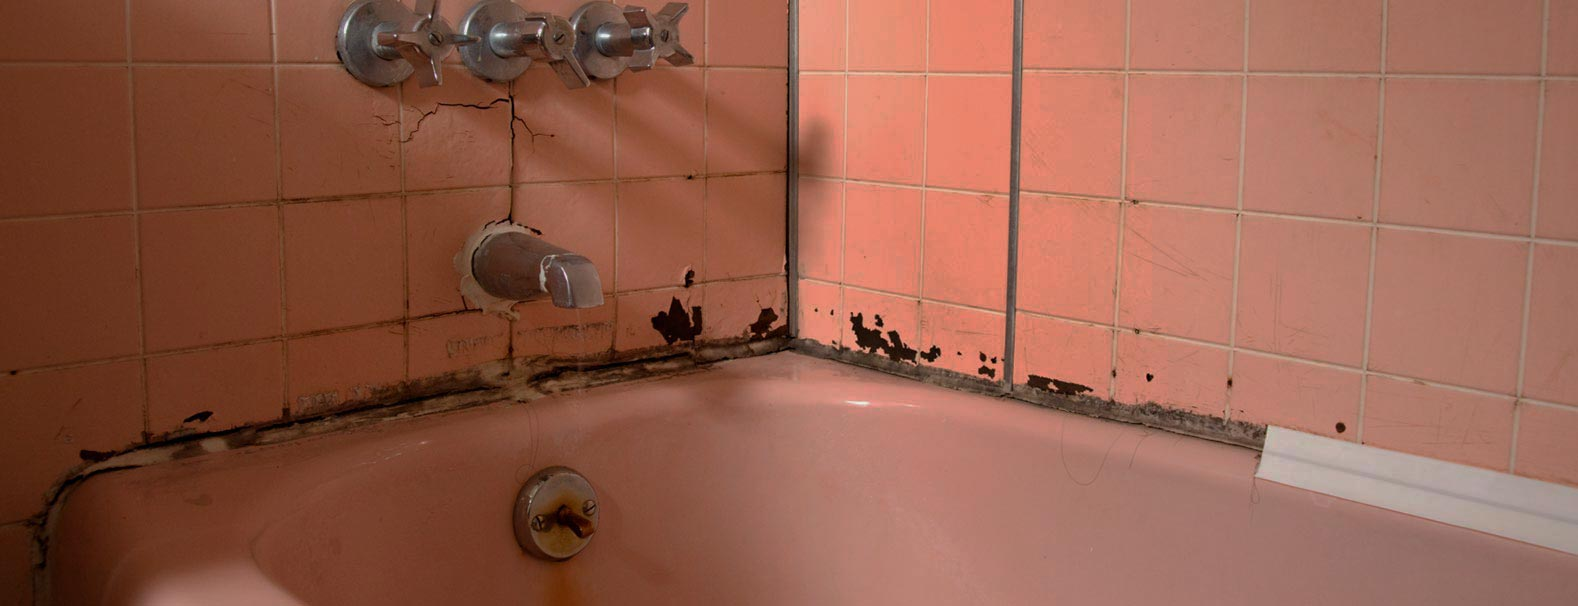 image of an old bath tub